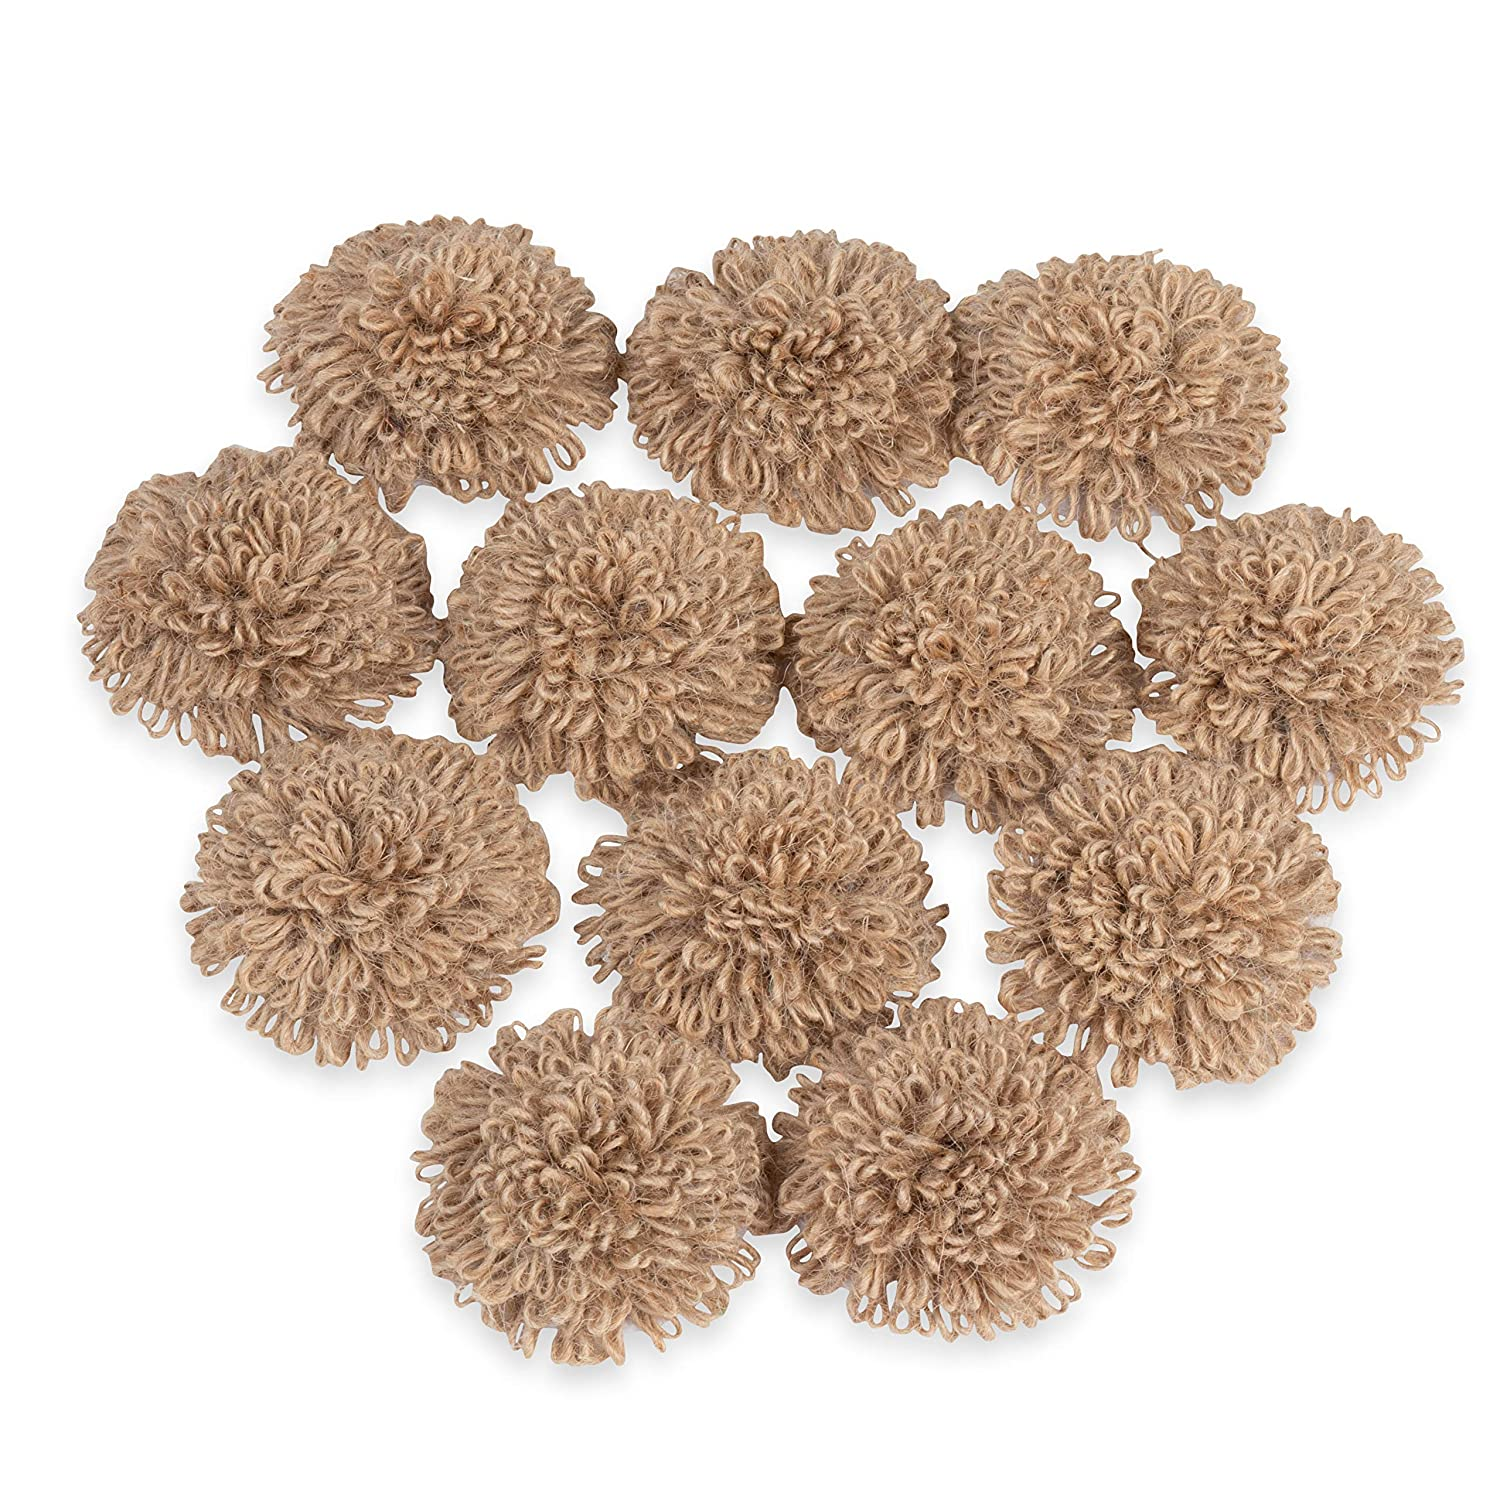 Juvale 12-Pack Lace Burlap 2.2-Inch Fabric Flower Embellishments for Craft, DIY Wedding Decorations, and Floral Ornaments